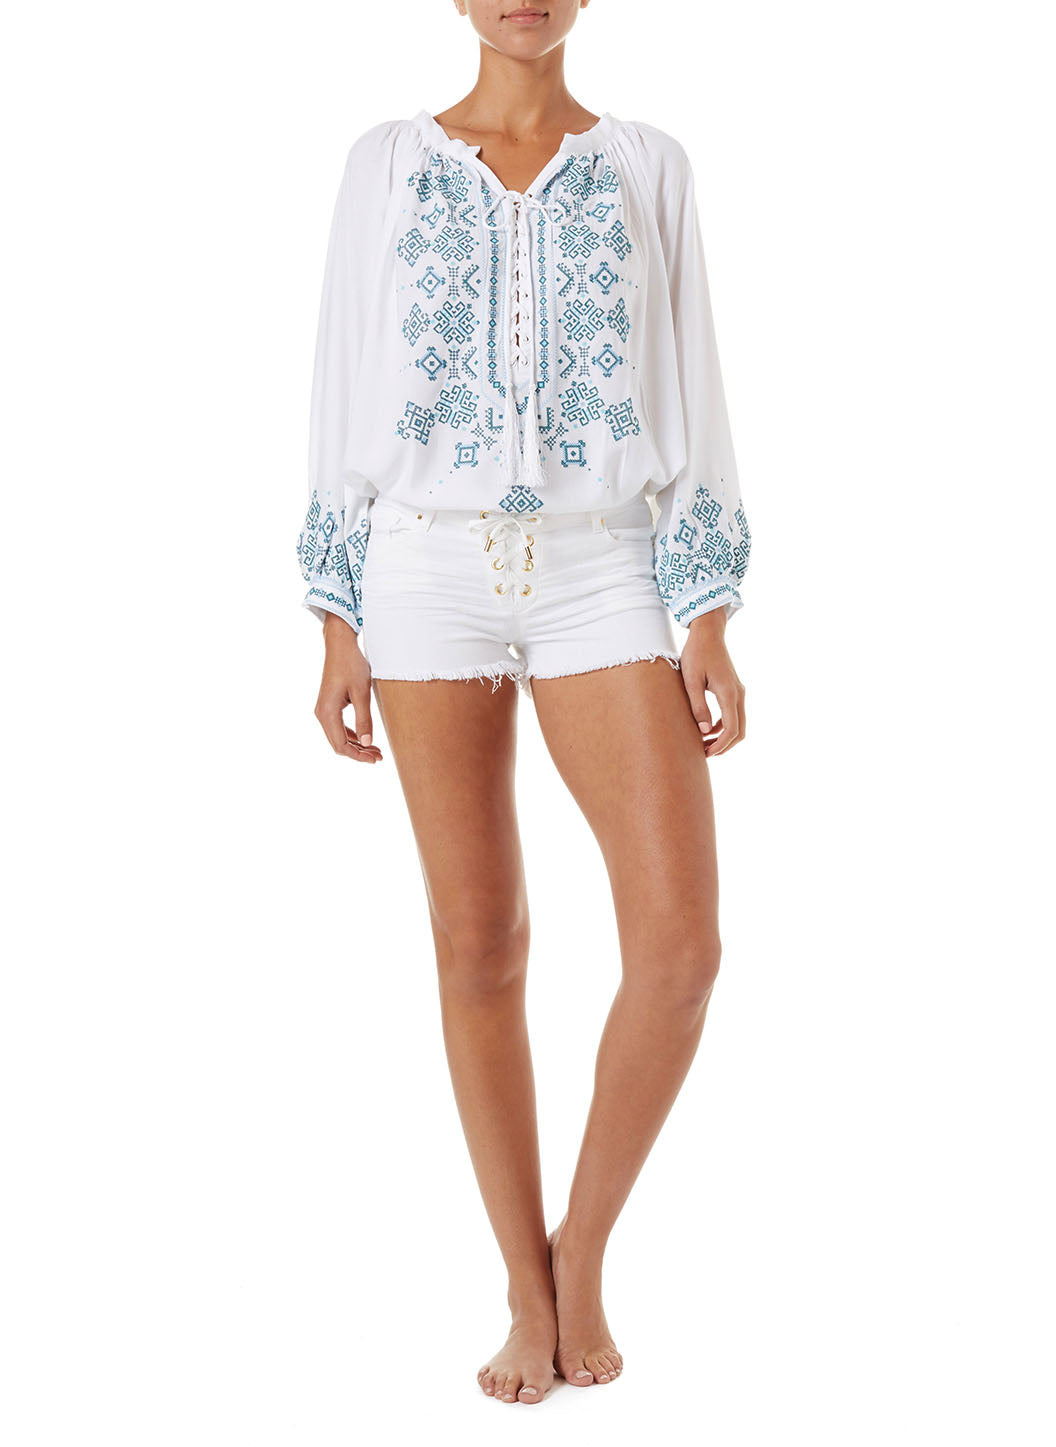 Alexi White Denim Lace-Up Shorts - Melissa Odabash Beachwear